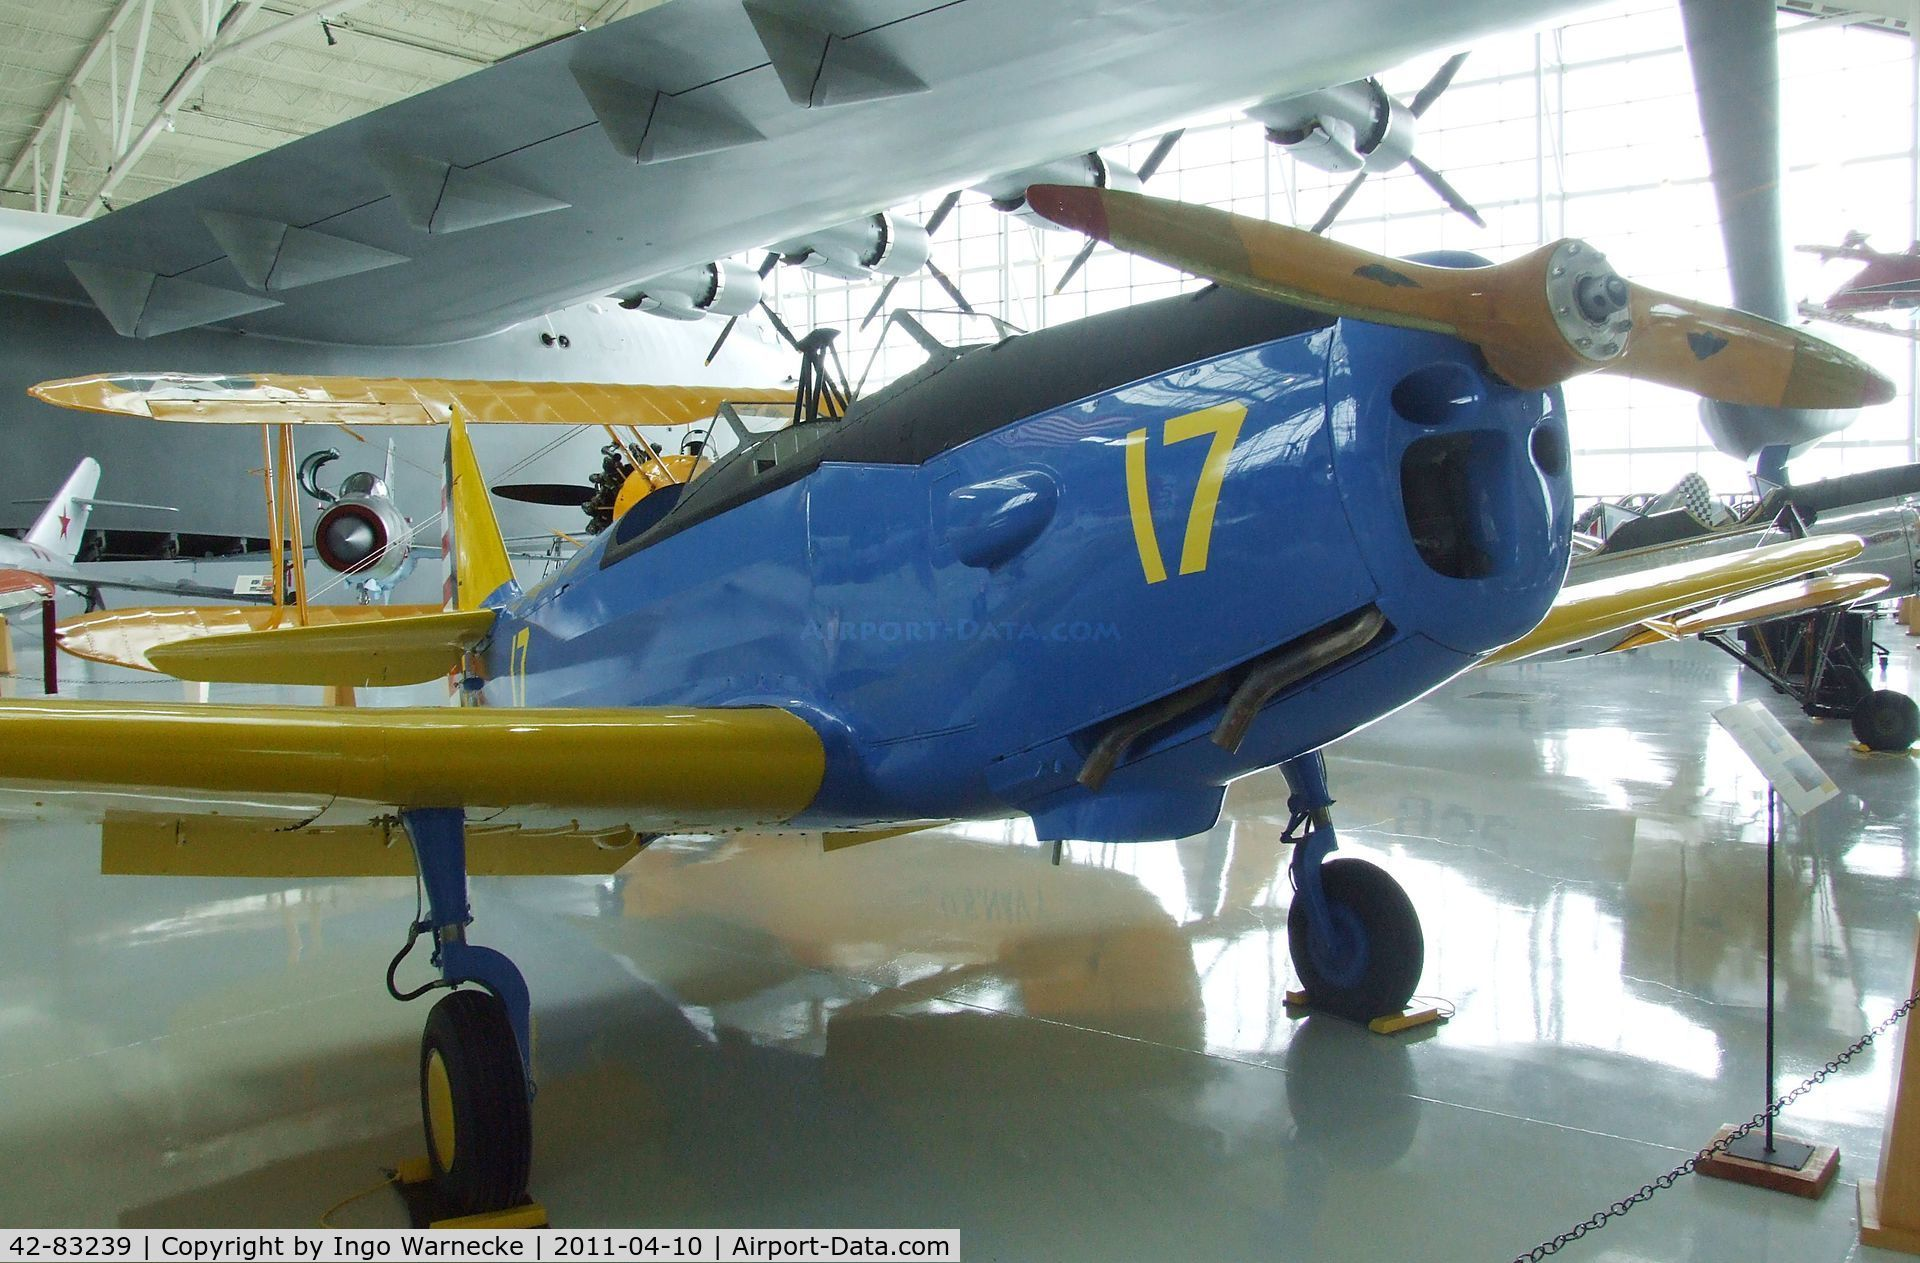 42-83239, 1943 Fairchild PT-19B C/N T43-5826, Fairchild PT-19B at the Evergreen Aviation & Space Museum, McMinnville OR